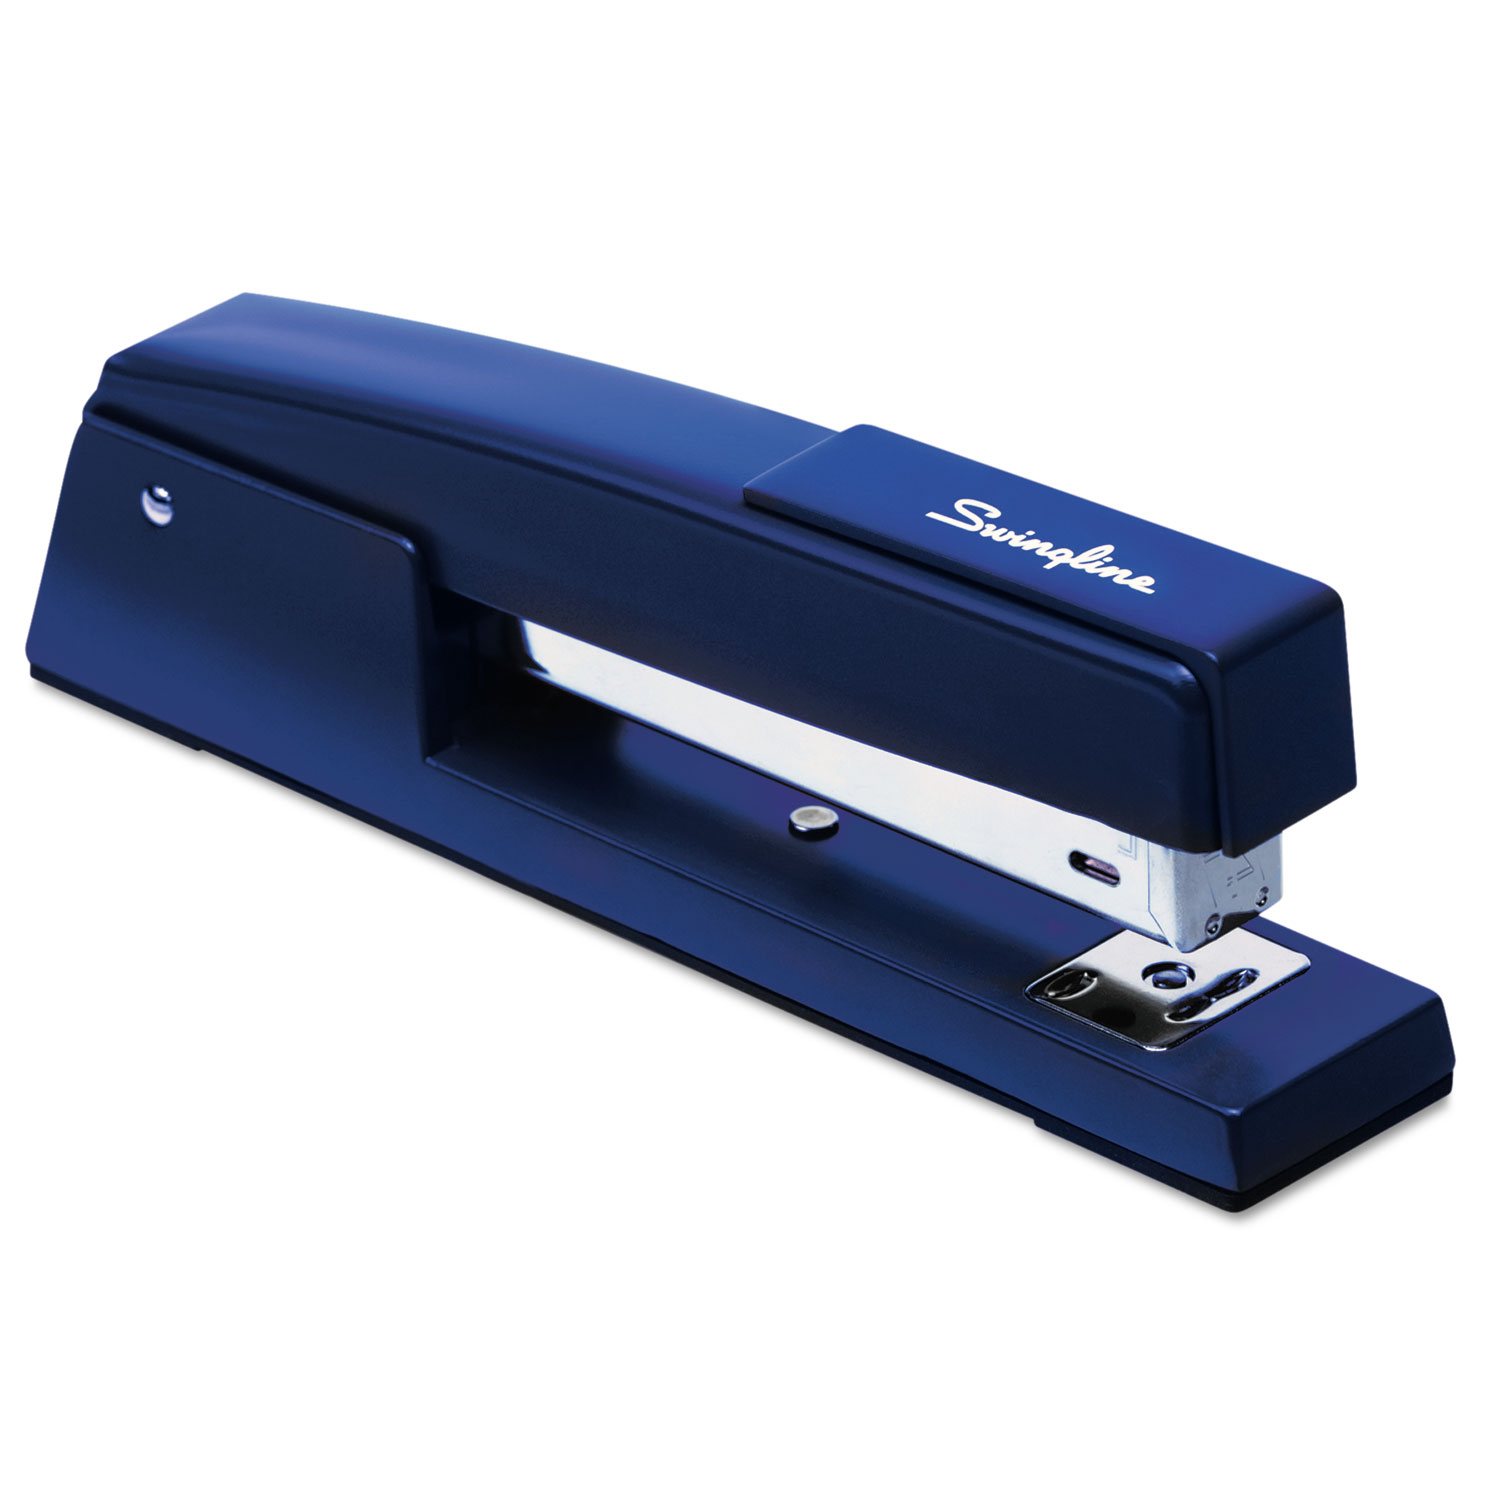 Swingline, the leading brand in workspace tools for the business, home and mobile office for over 80 years, continues to introduce innovative new products including staplers, paper punches, trimmers and sharpeners that solve common workplace frustrations and increase productivity.